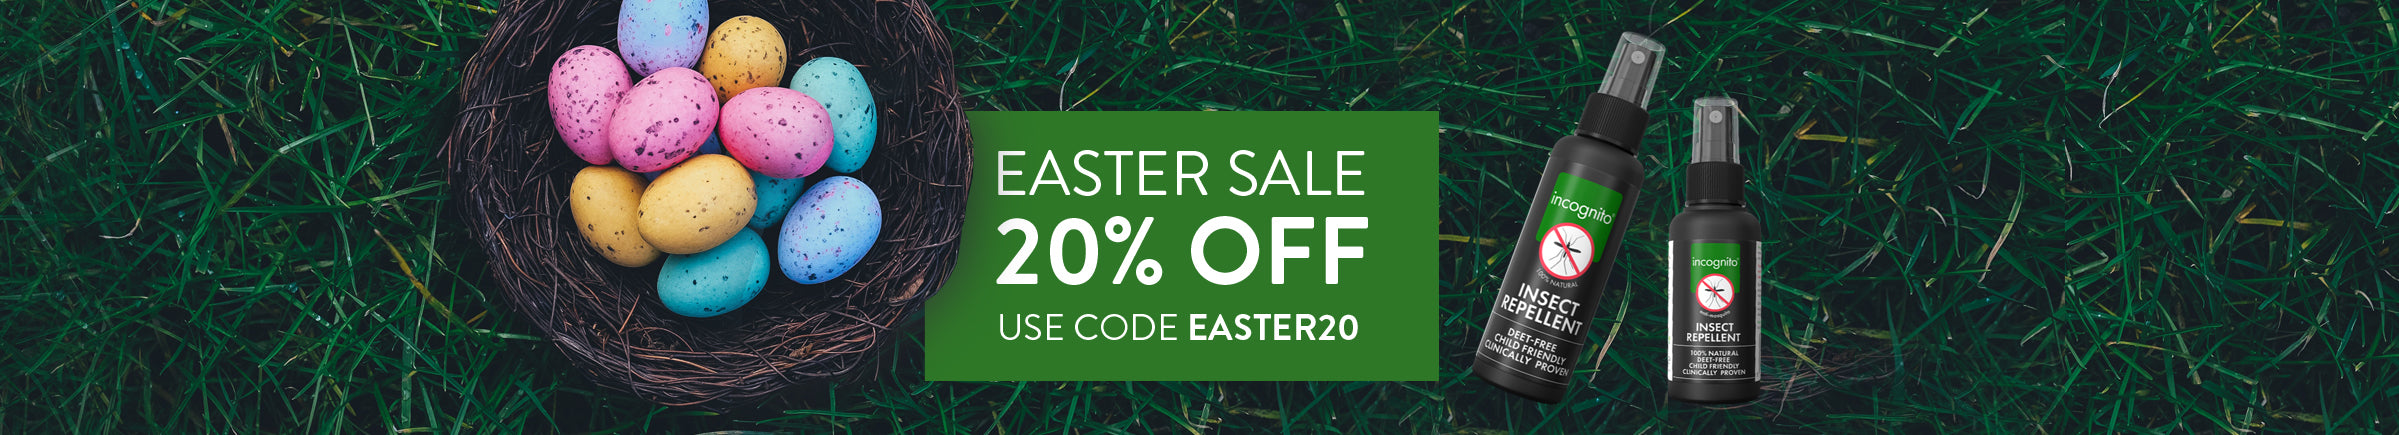 Use code EASTER20 on checkout